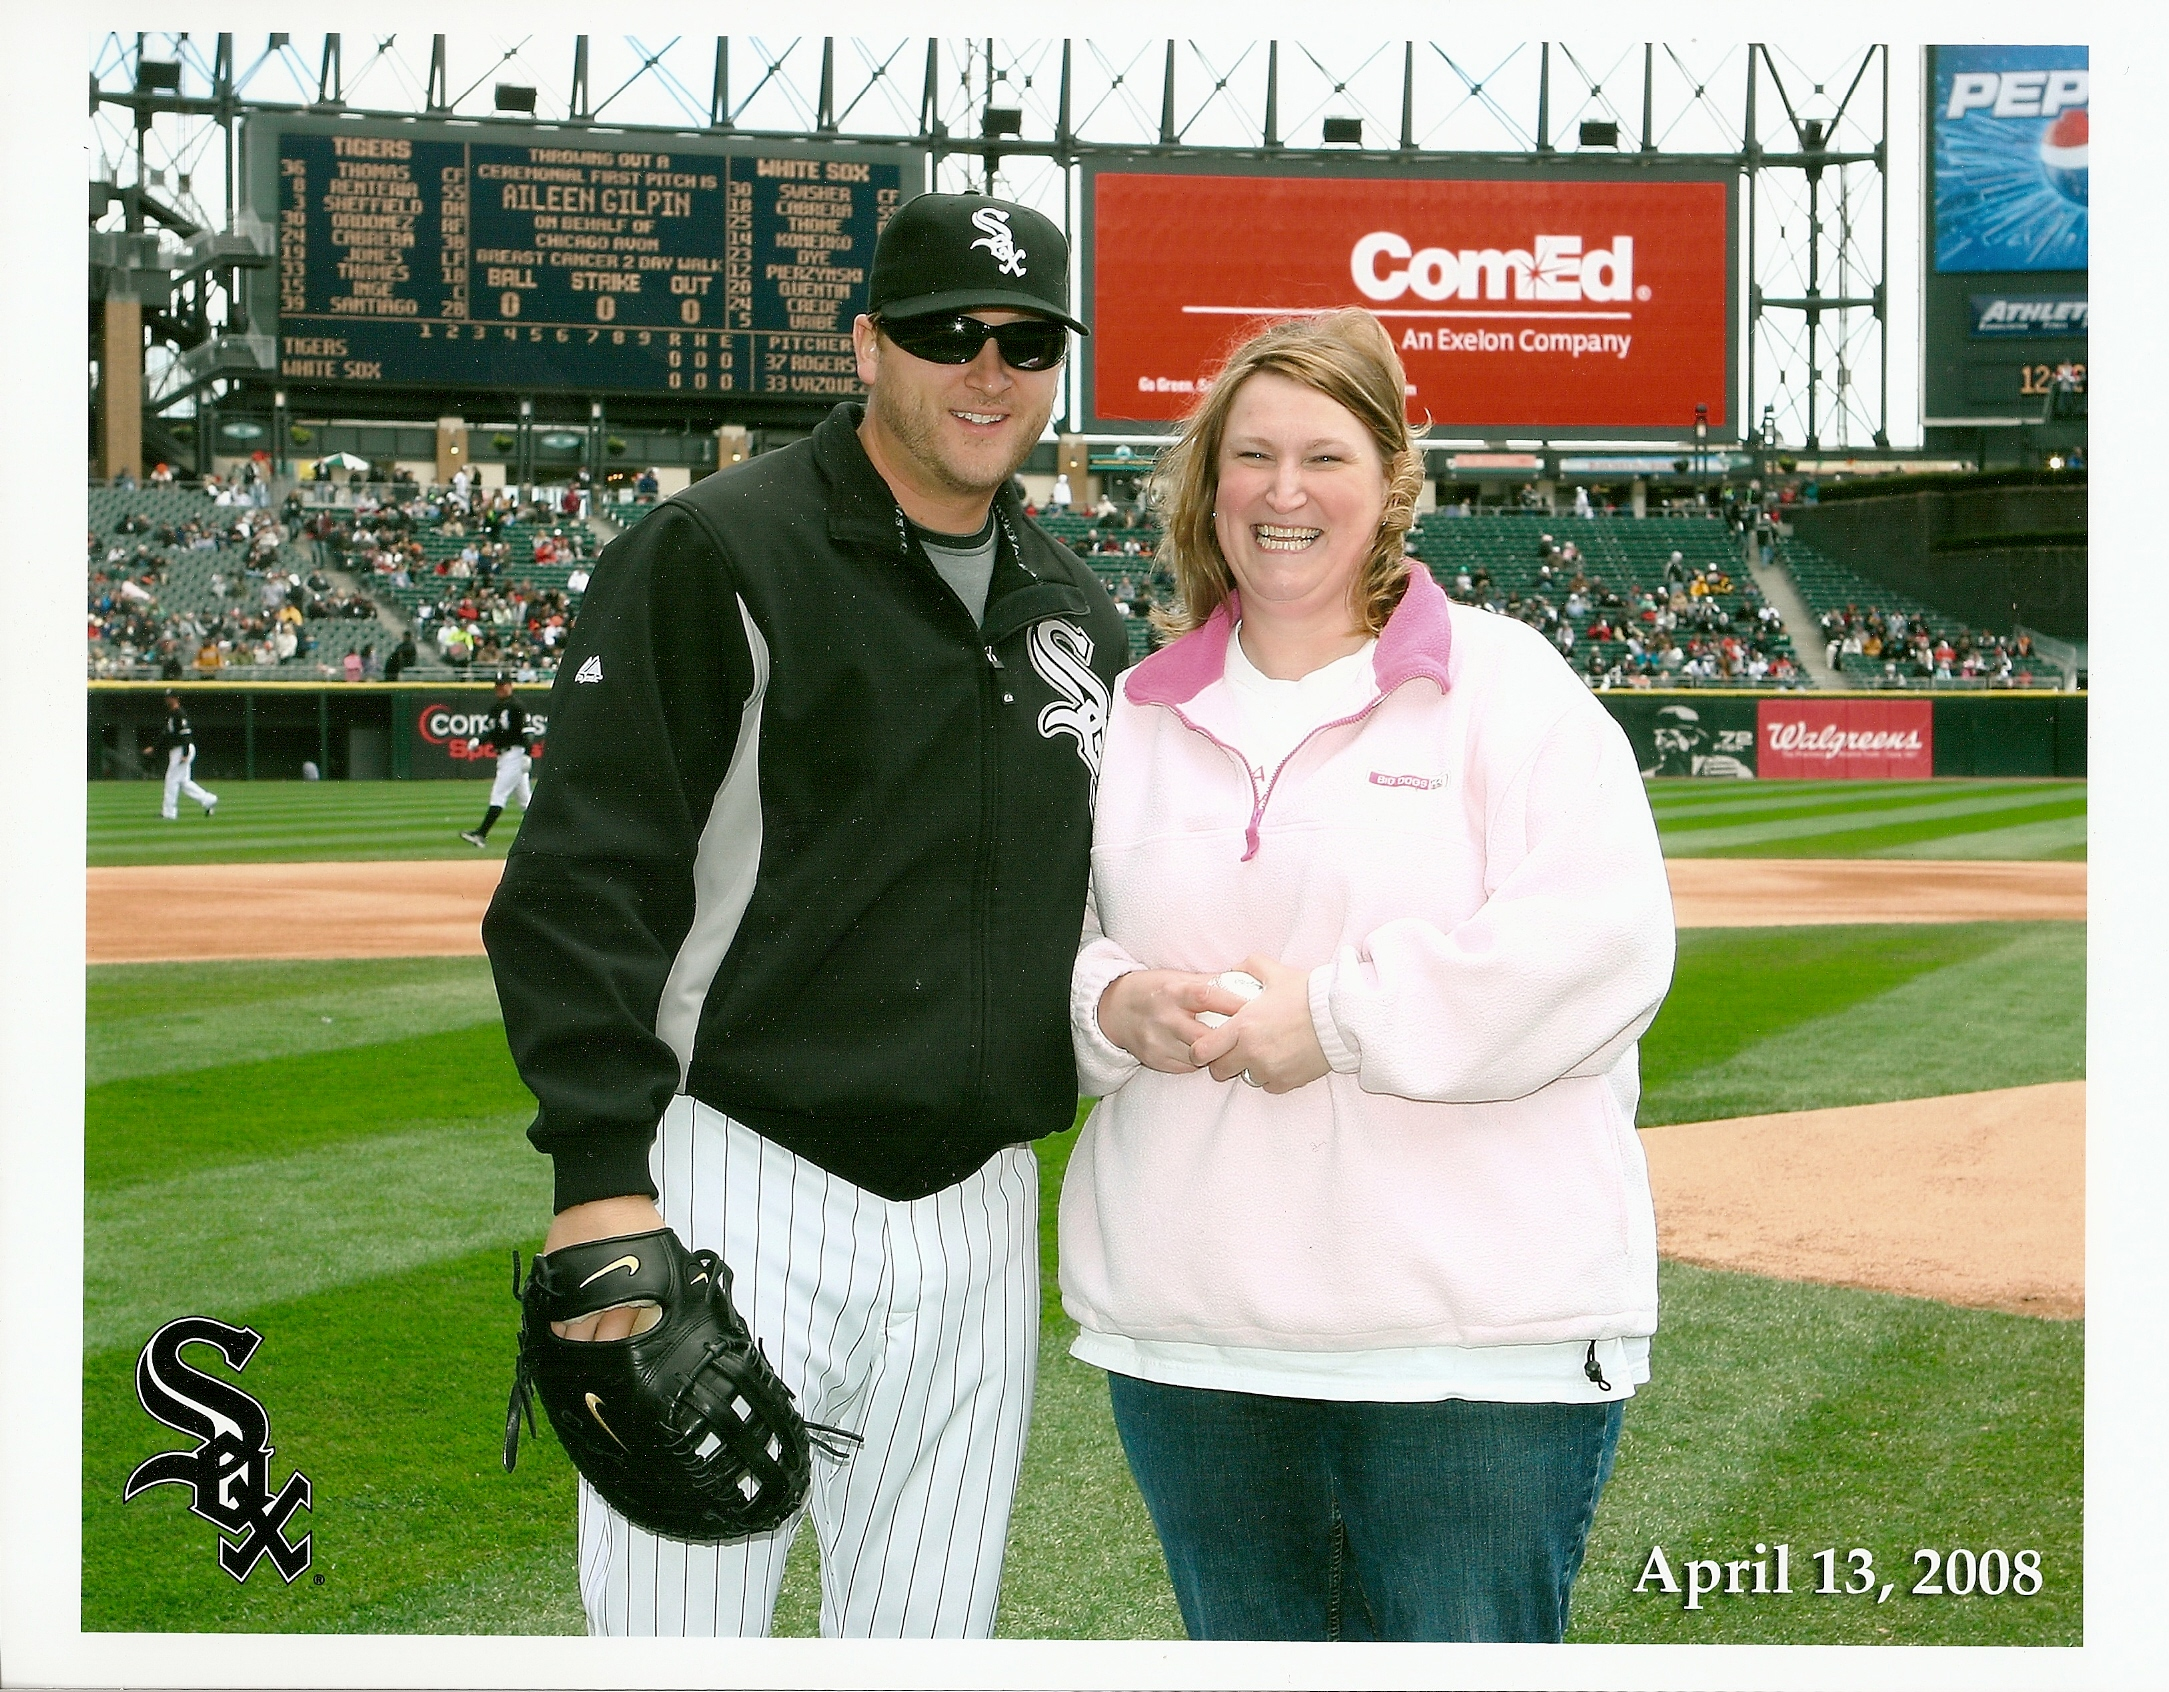 Aileen Gilpin with Mark Buehrle of Chicago White Sox